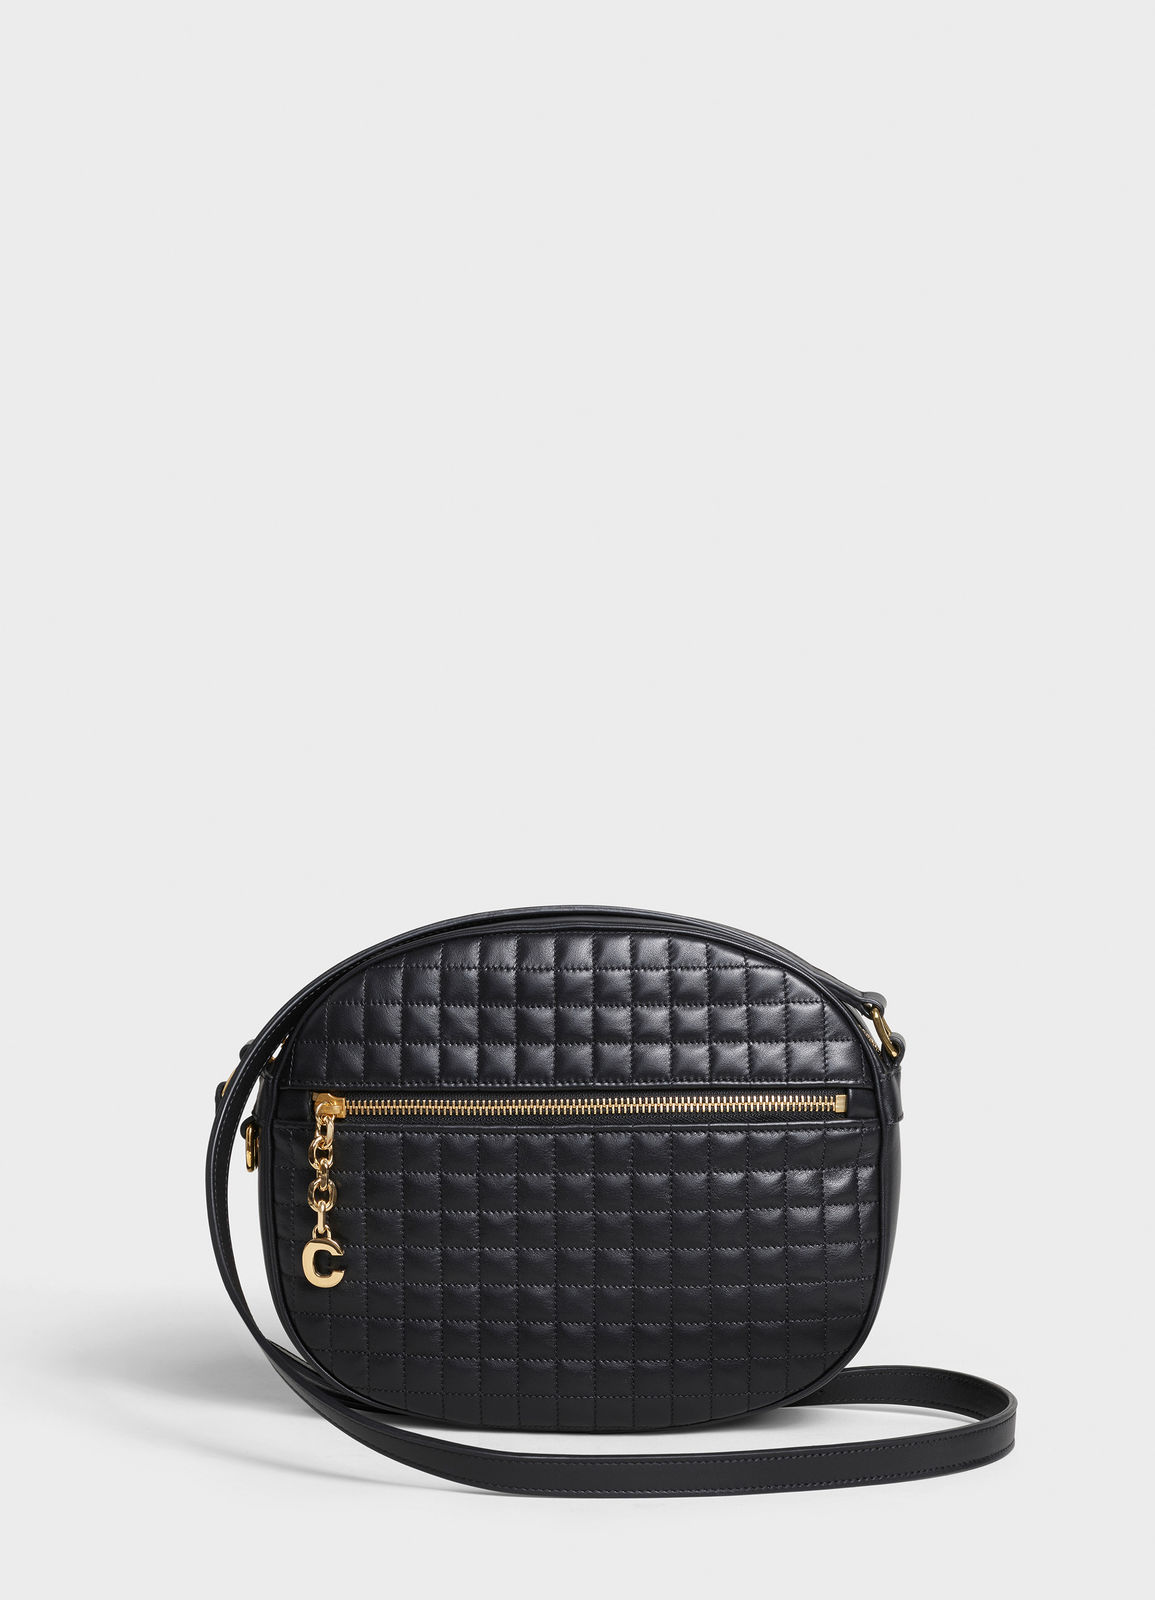 CELINE CROSS BODY MEDIUM C CHARM BAG IN QUILTED CALFSKIN 188353 BLACK